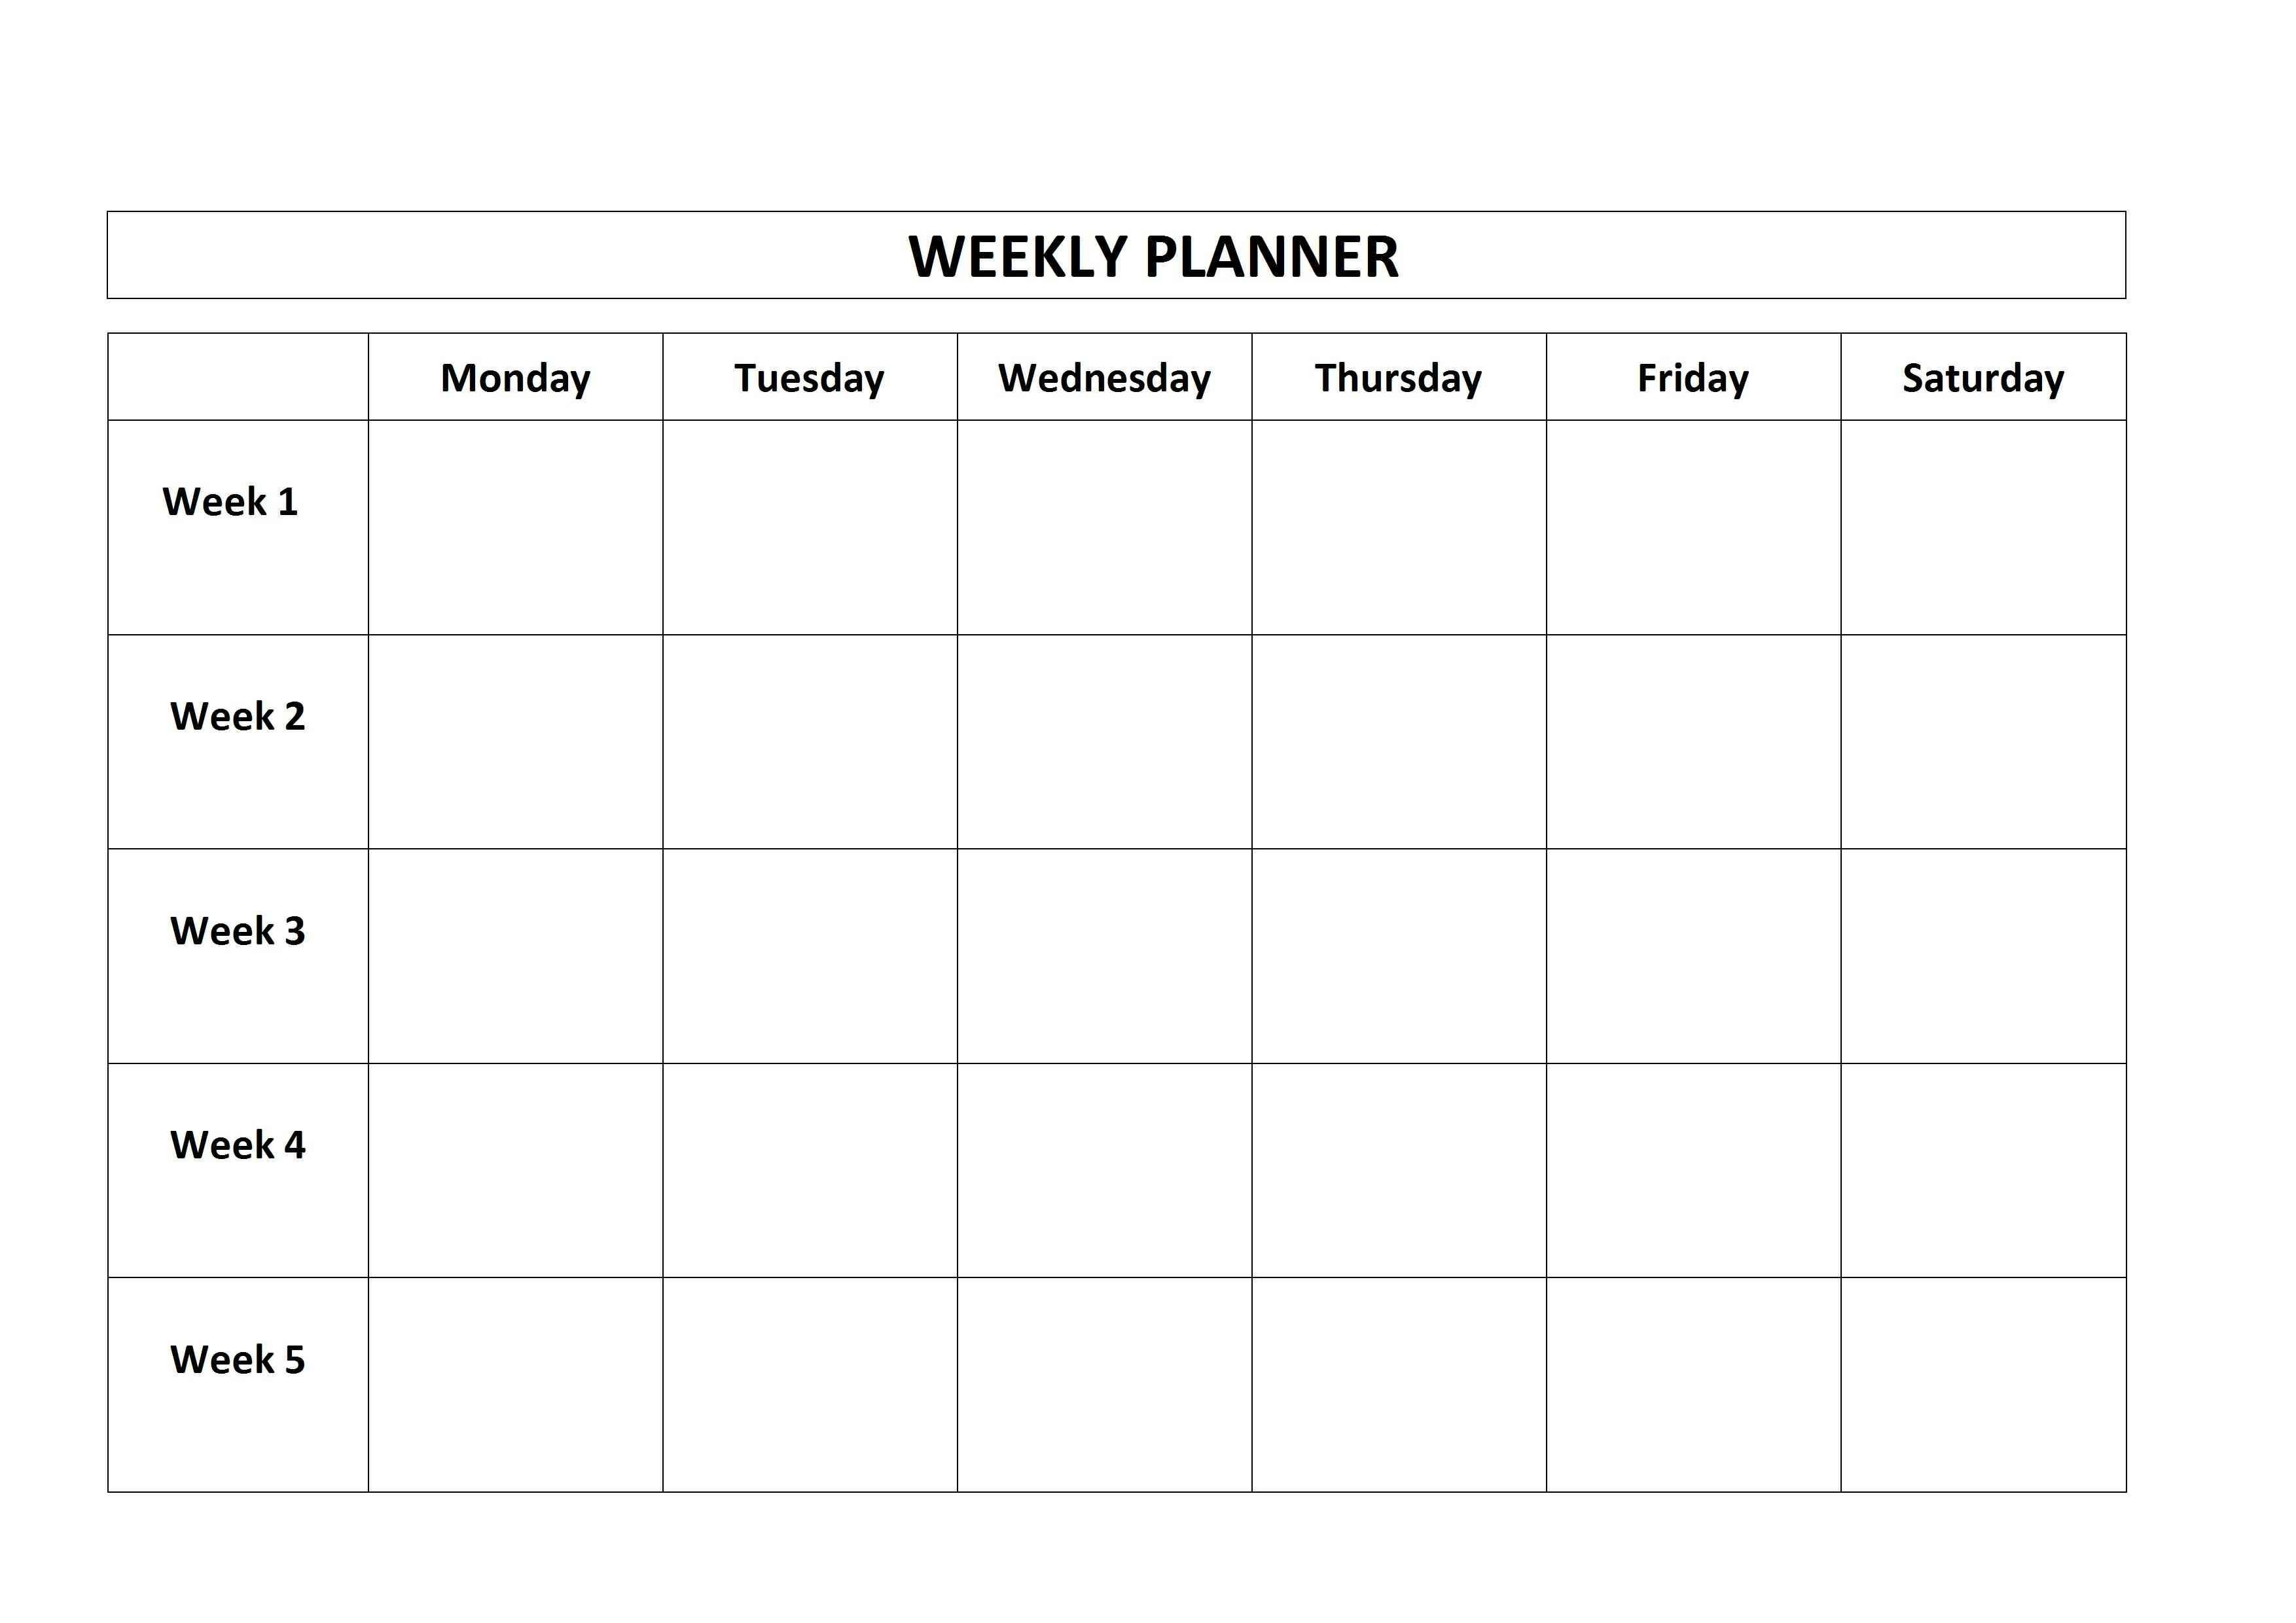 Free Printable Weekly Planner Monday Friday School Calendar Calendar Saturday To Friday